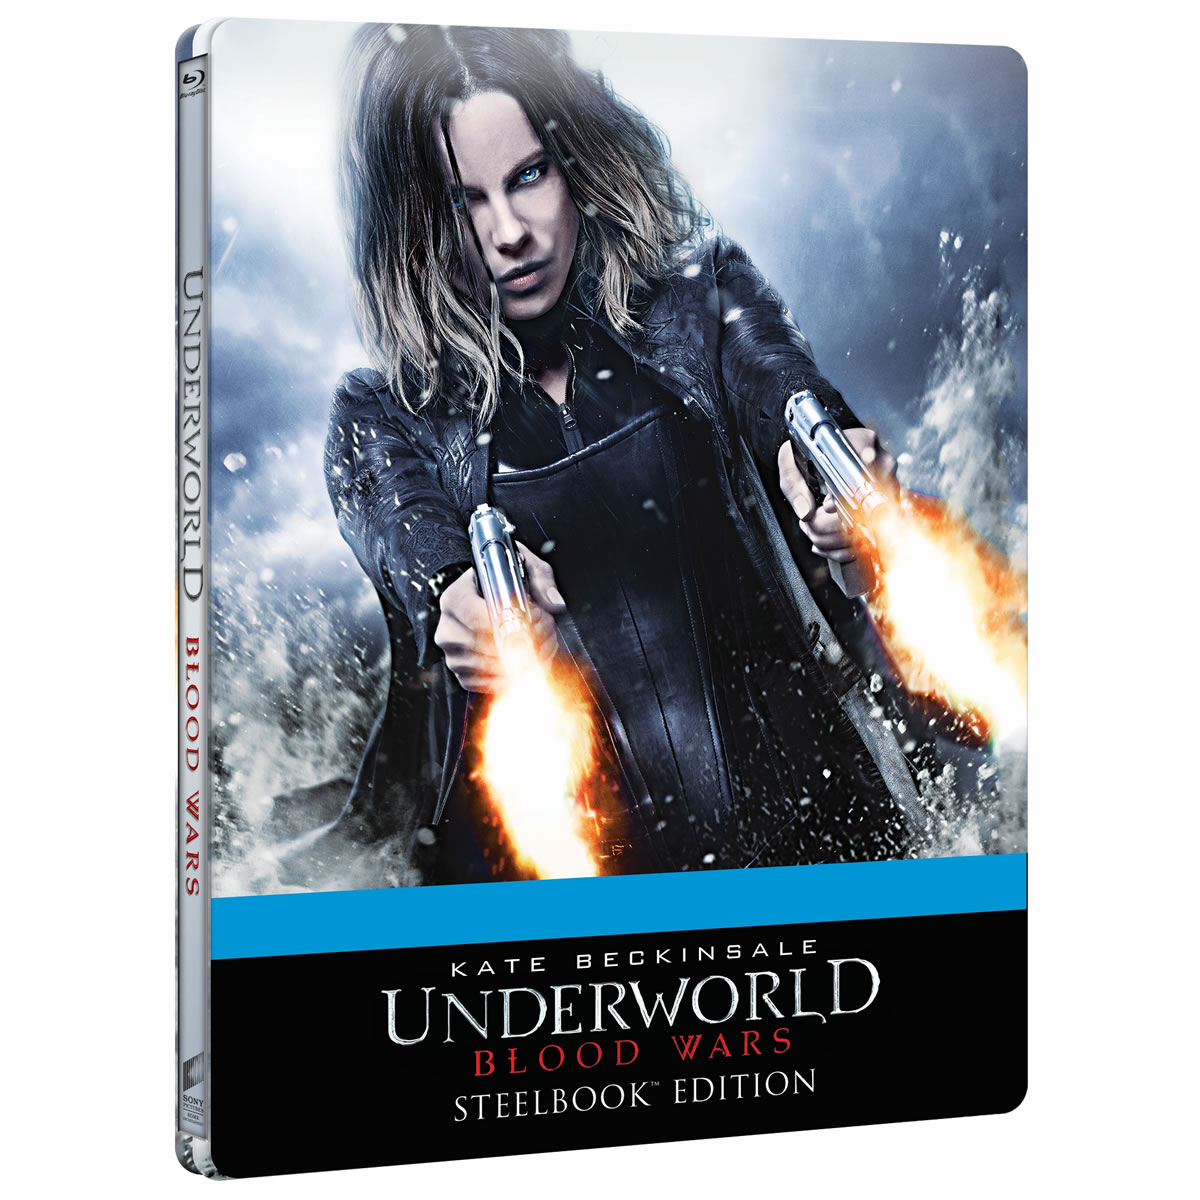 UNDERWORLD: BLOOD WARS 3D Limited Edition Steelbook [Imported] (BLU-RAY 3D + BLU-RAY)